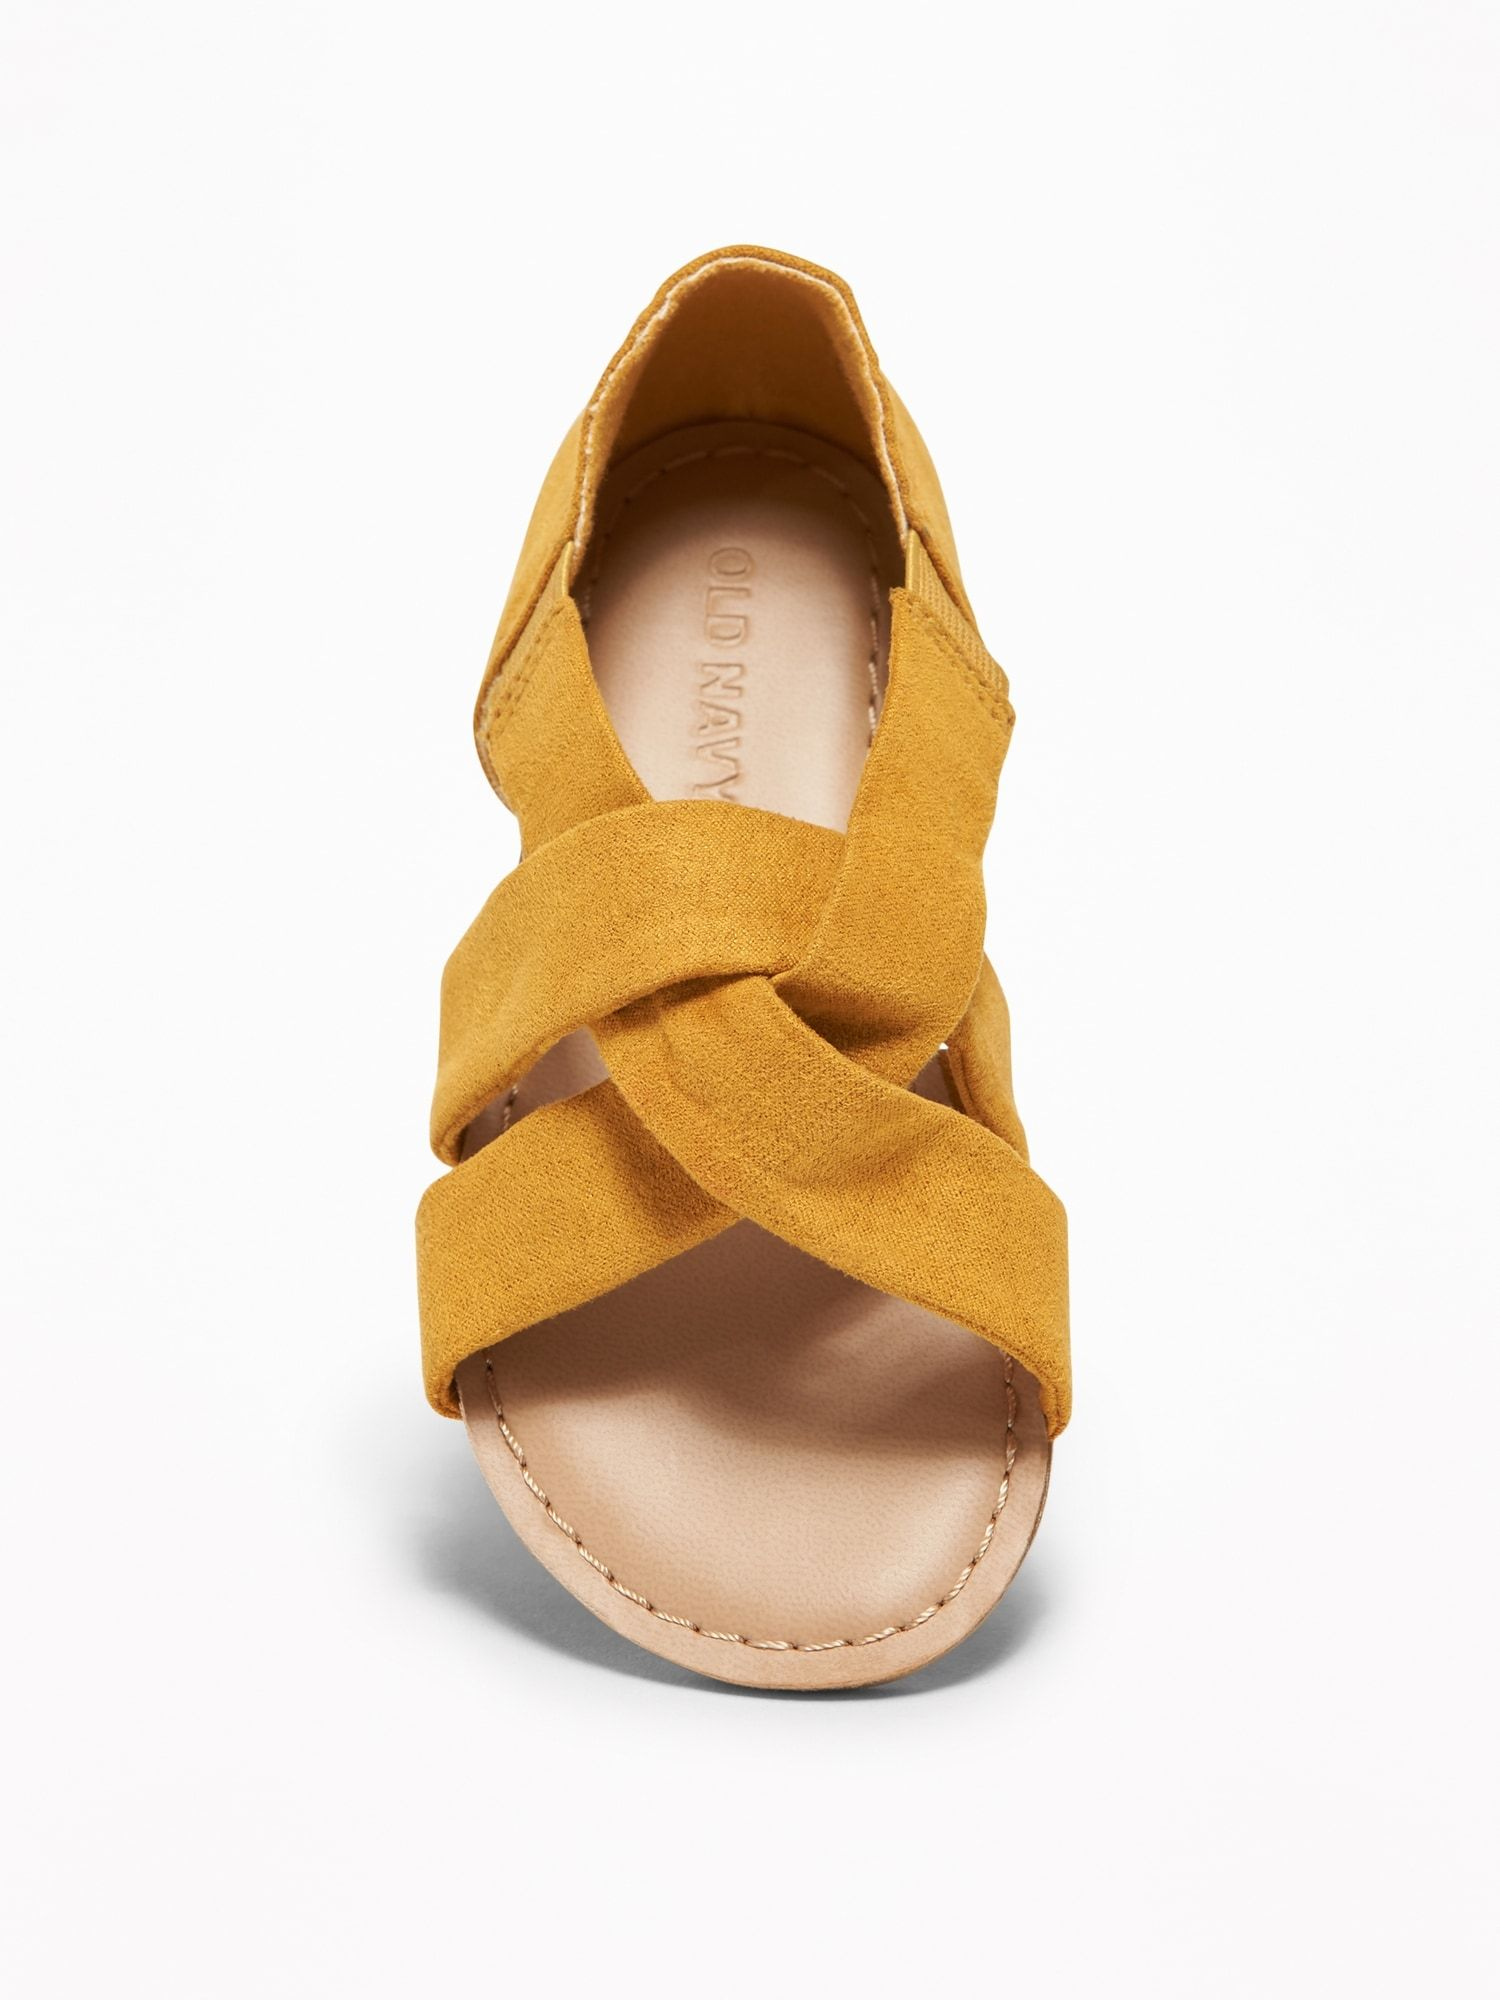 Slouchy Faux Suede Cross Strap Sandals For Toddler Girls Old Navy Strap Sandals Flat Girls Sandals Kid Shoes